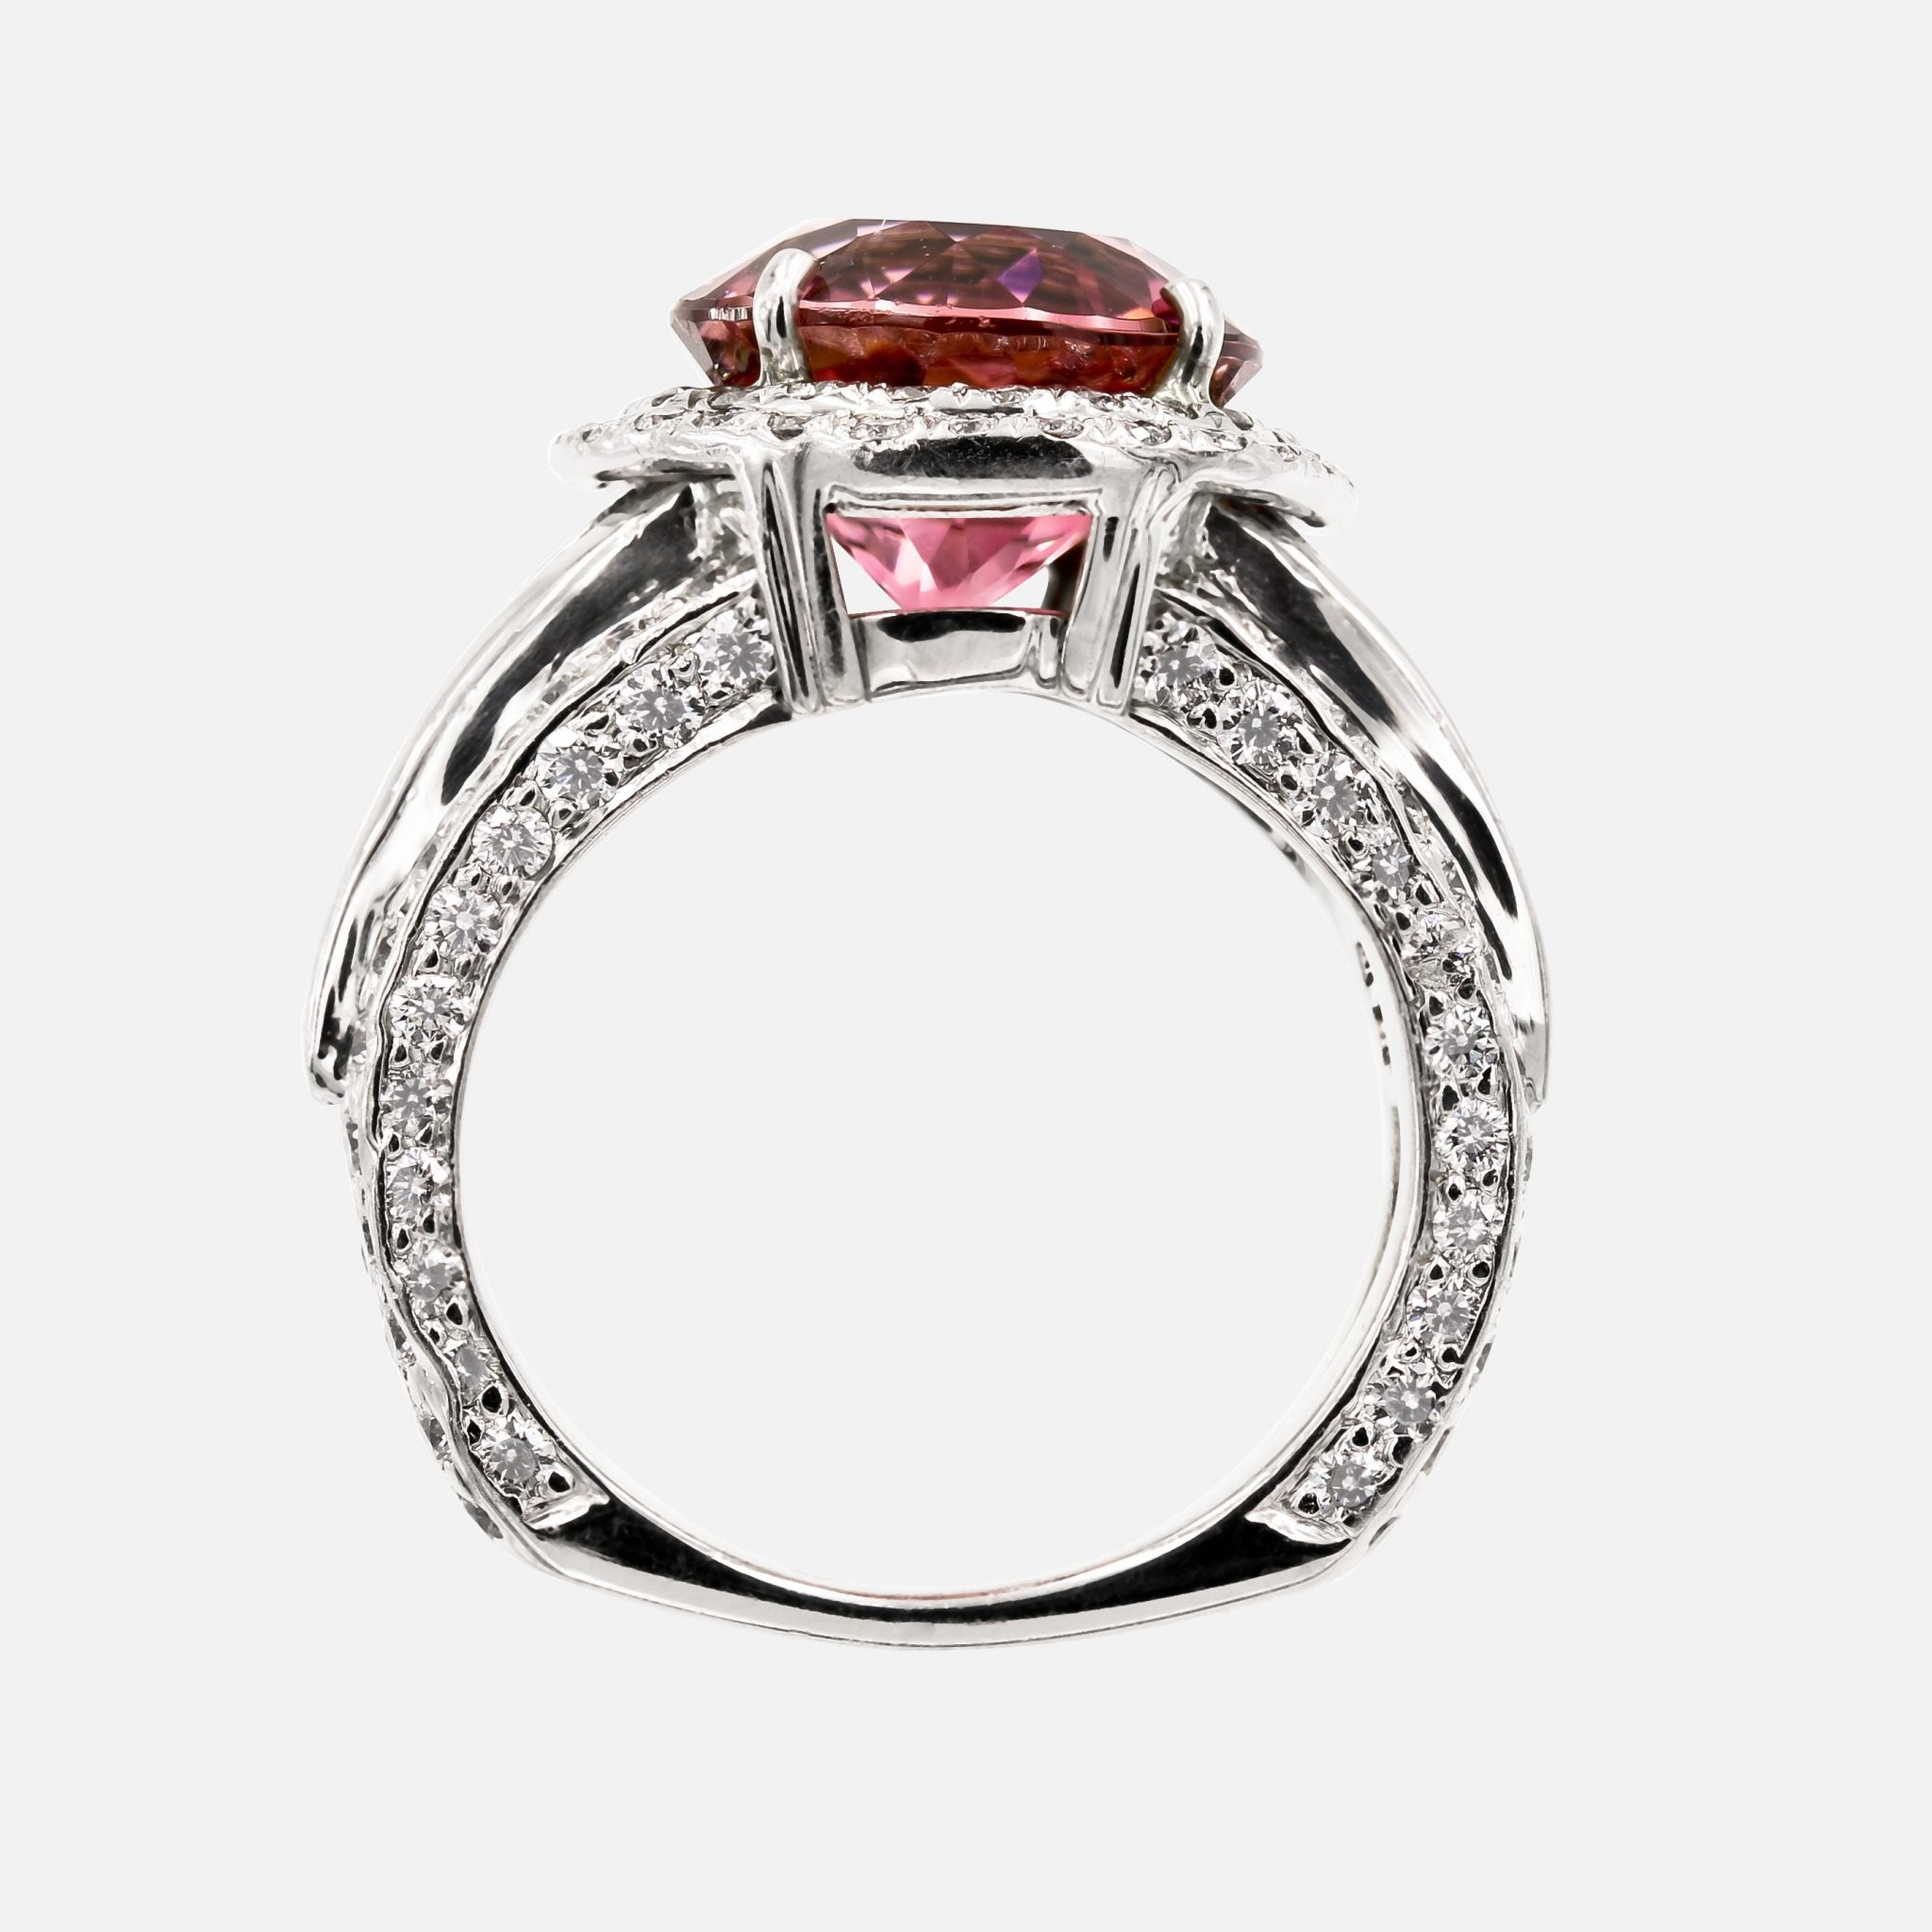 Diamond Ring With Pink Stone